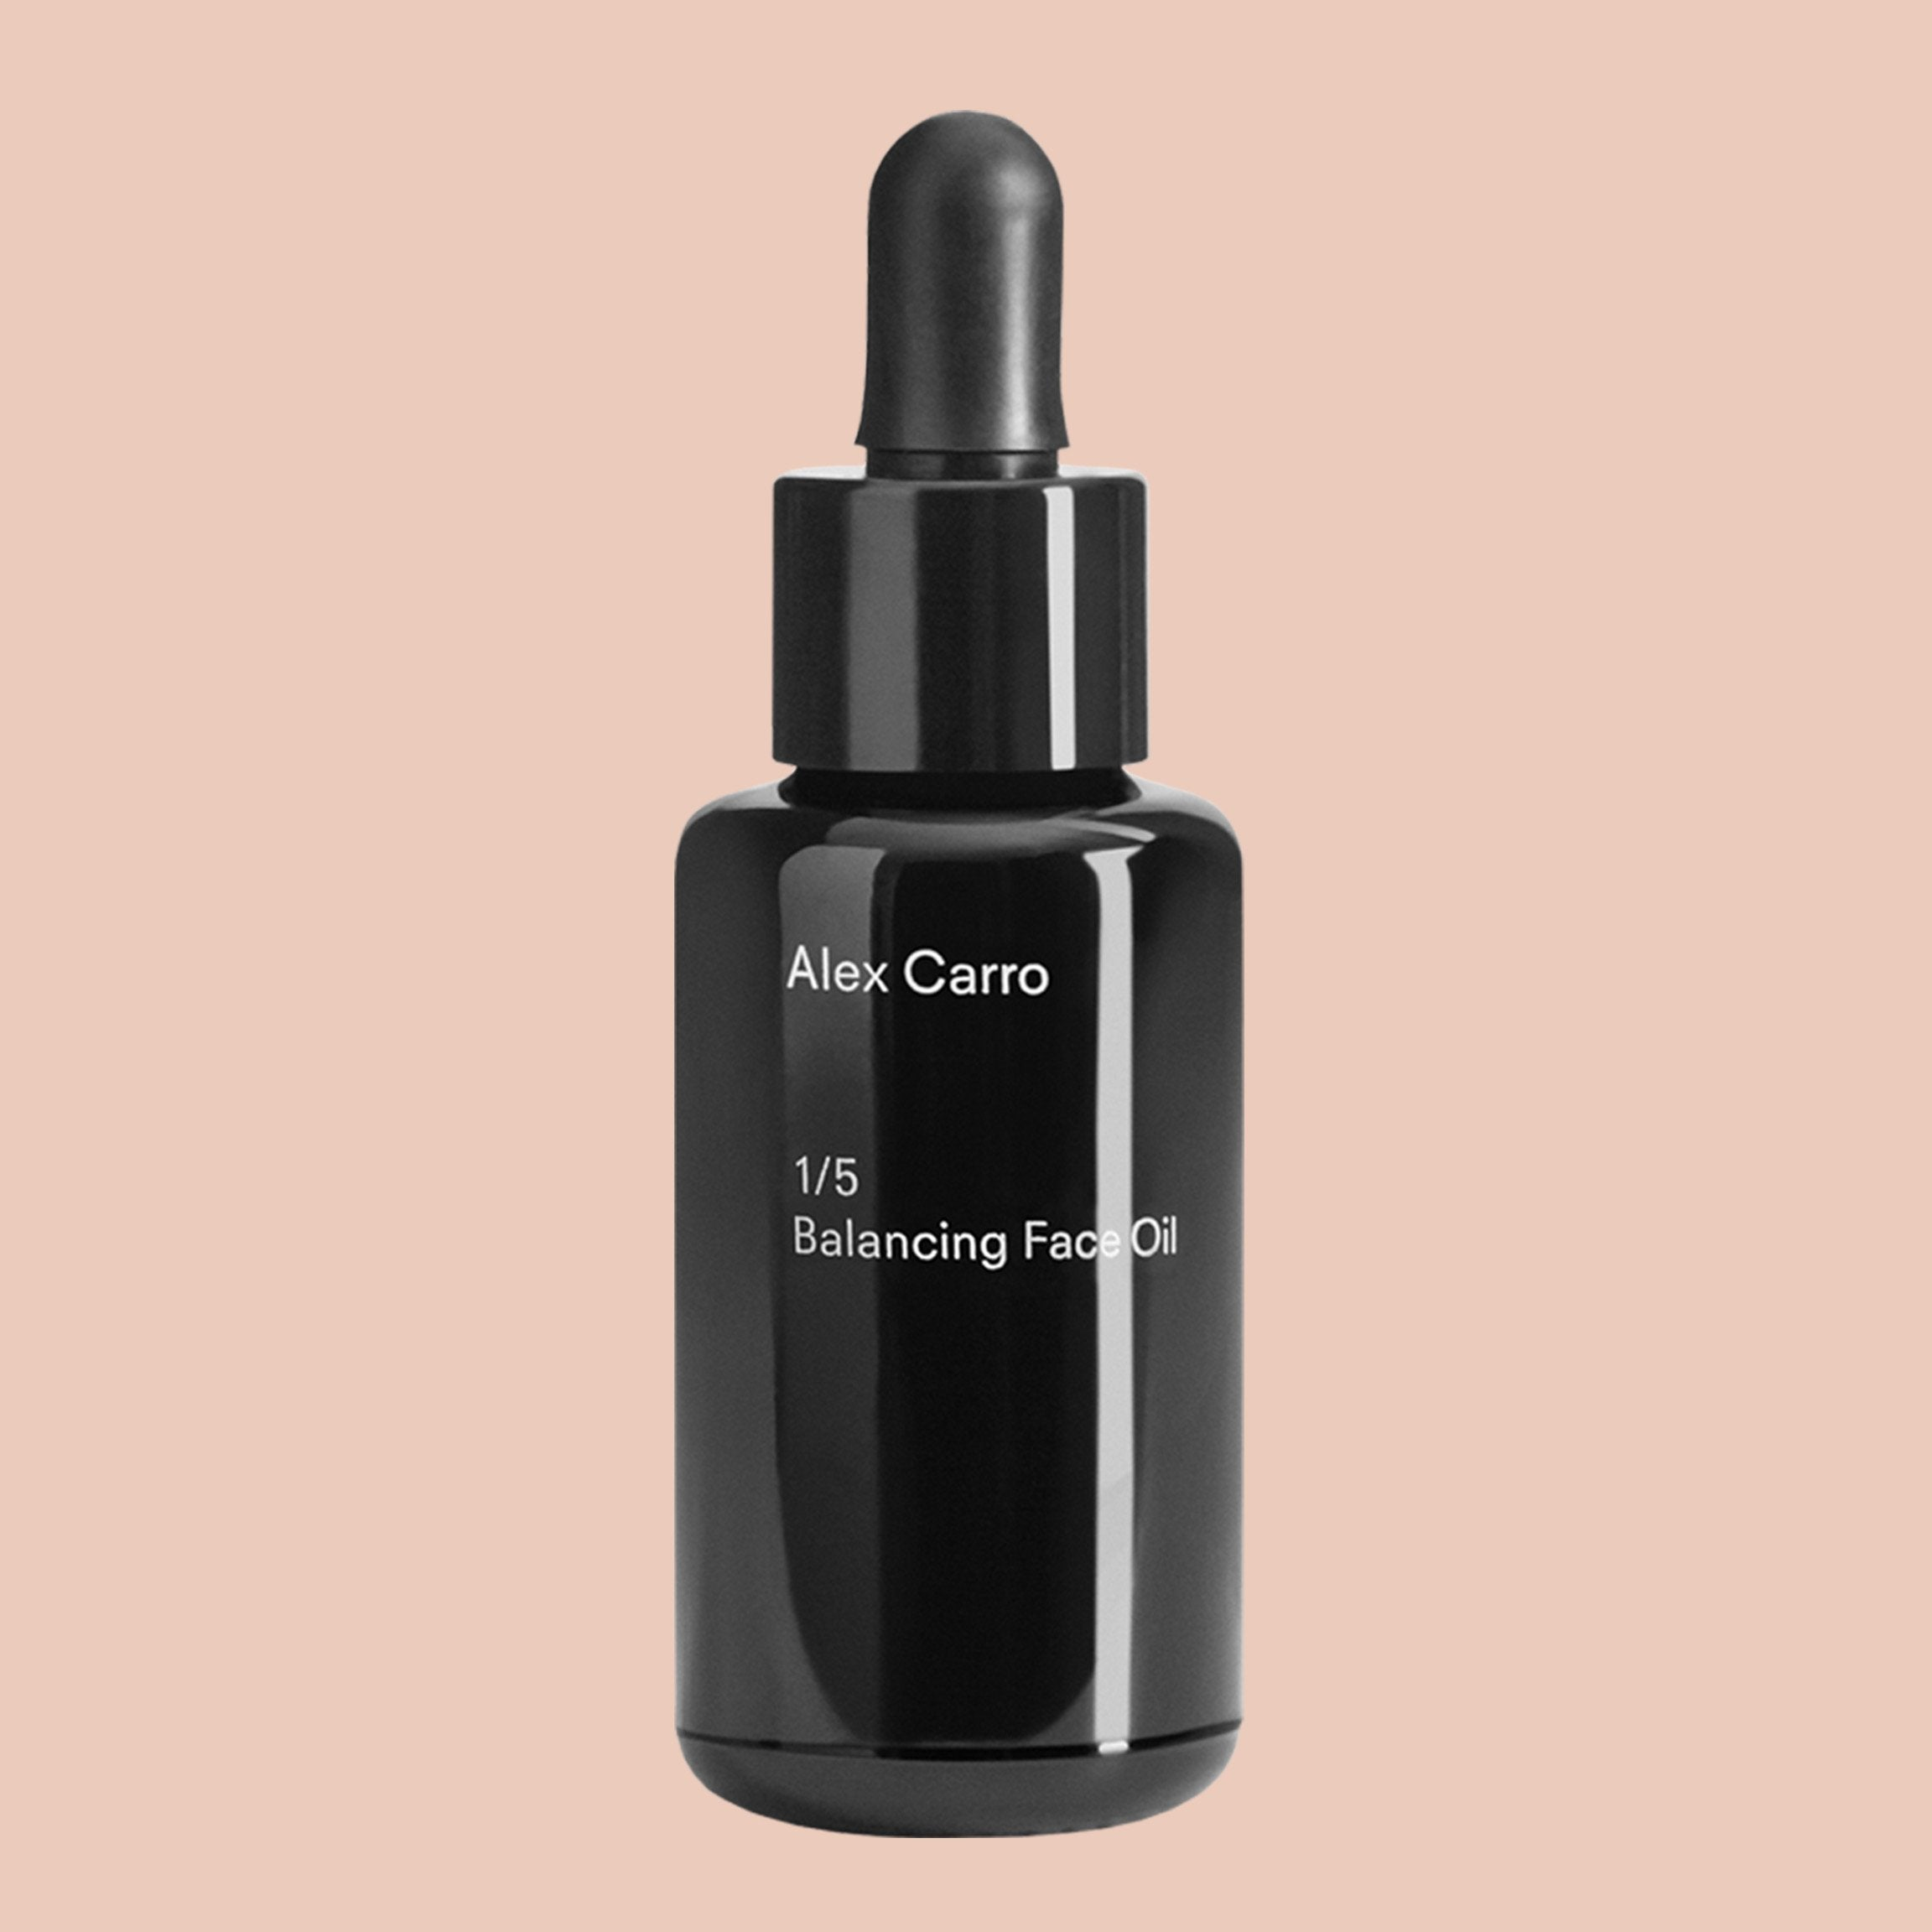 1/5 Balancing Face Oil - Alex Carro